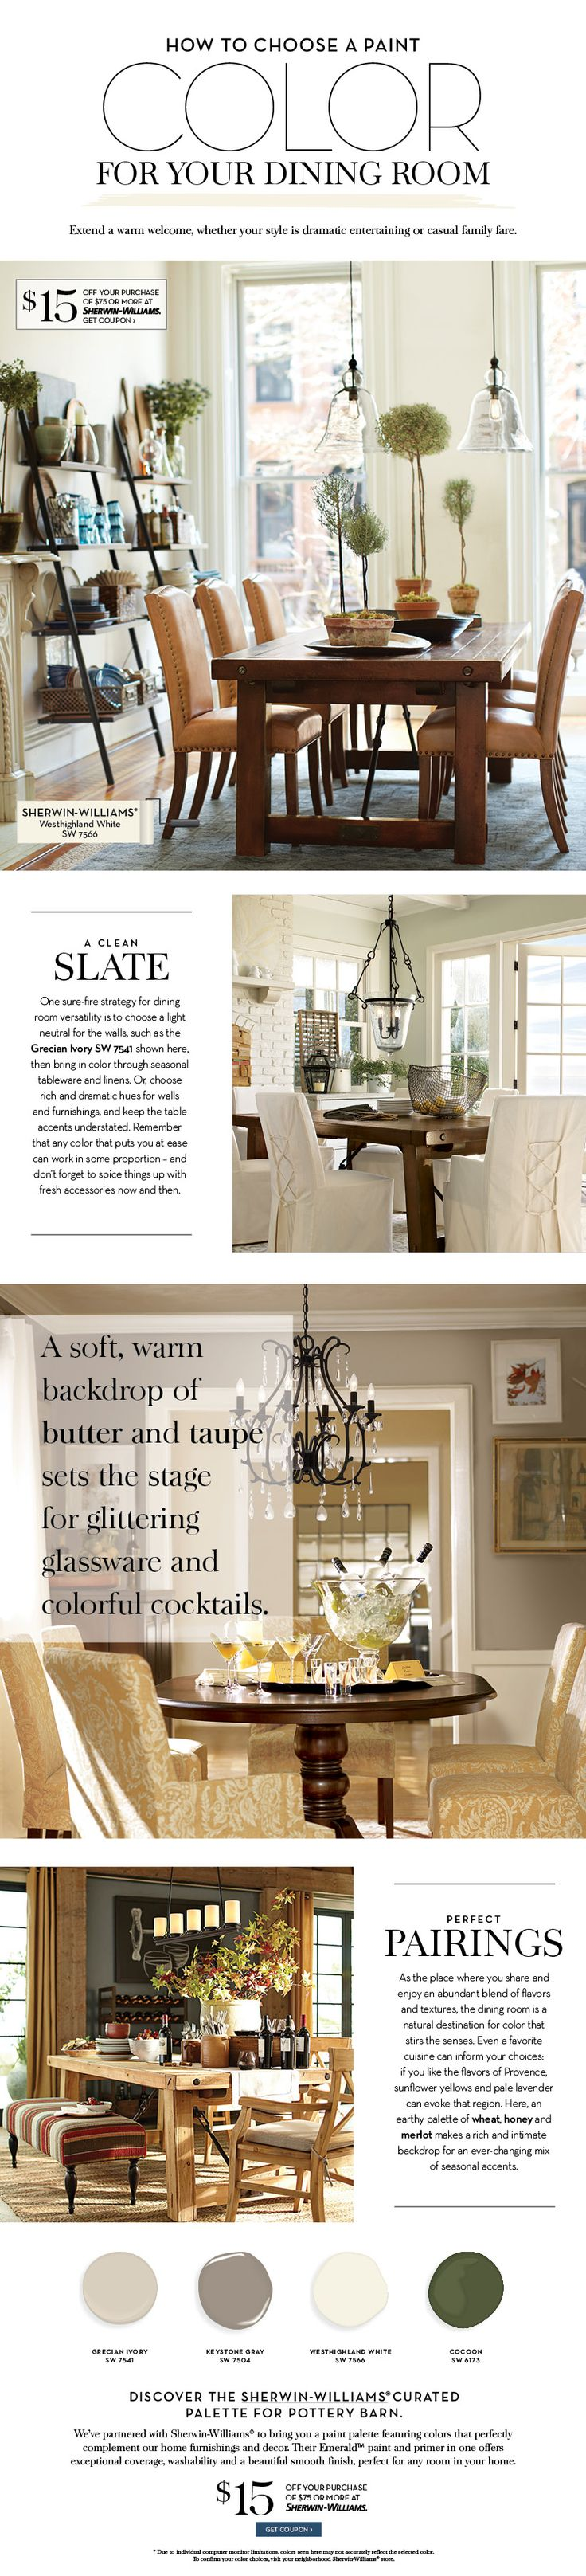 Pottery barn dining room white - How To Choose A Paint Color For Your Dining Room